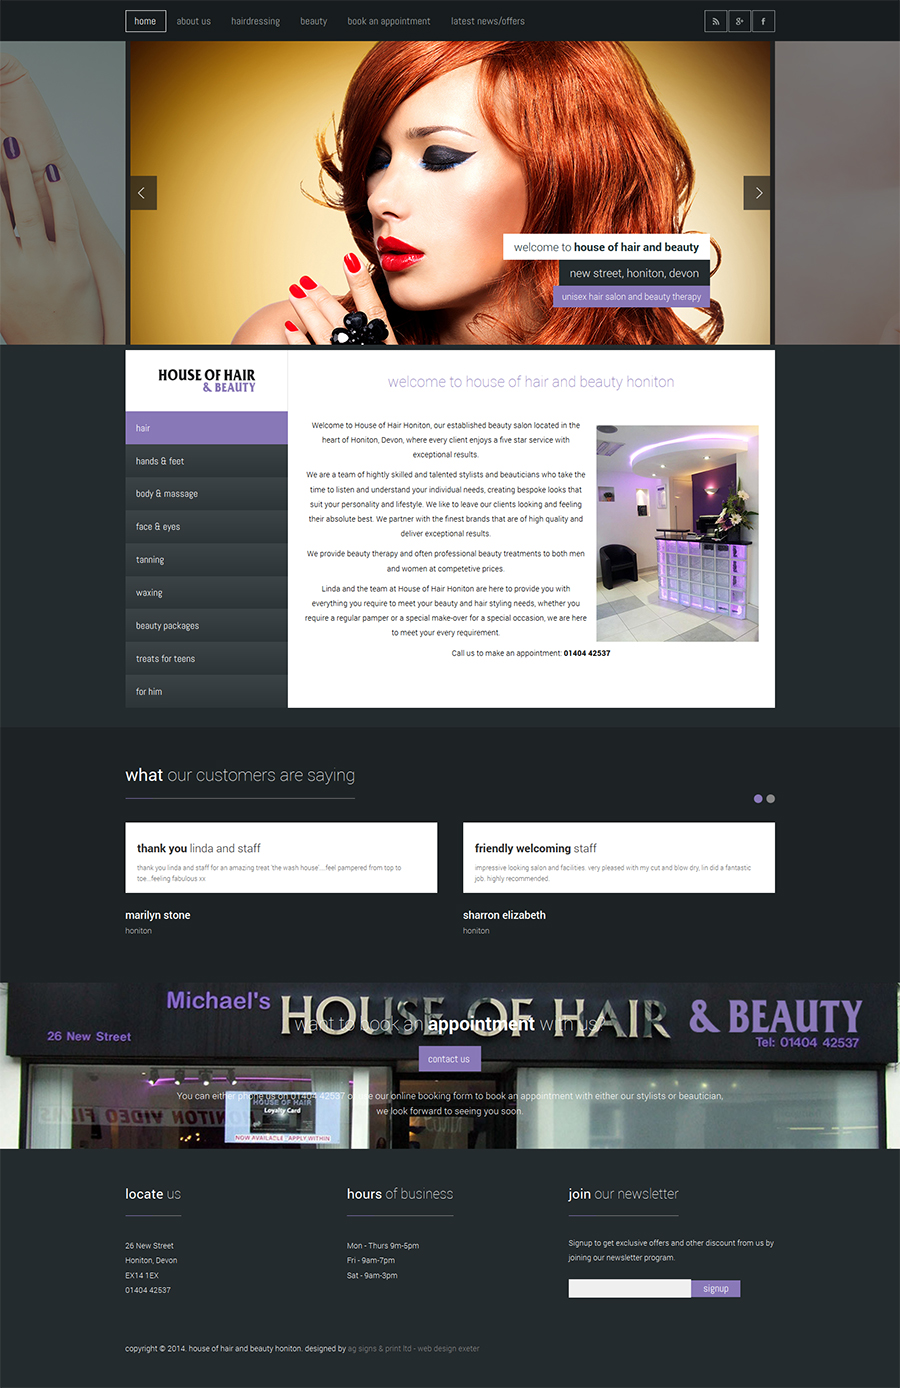 House of Hair and Beauty Honiton